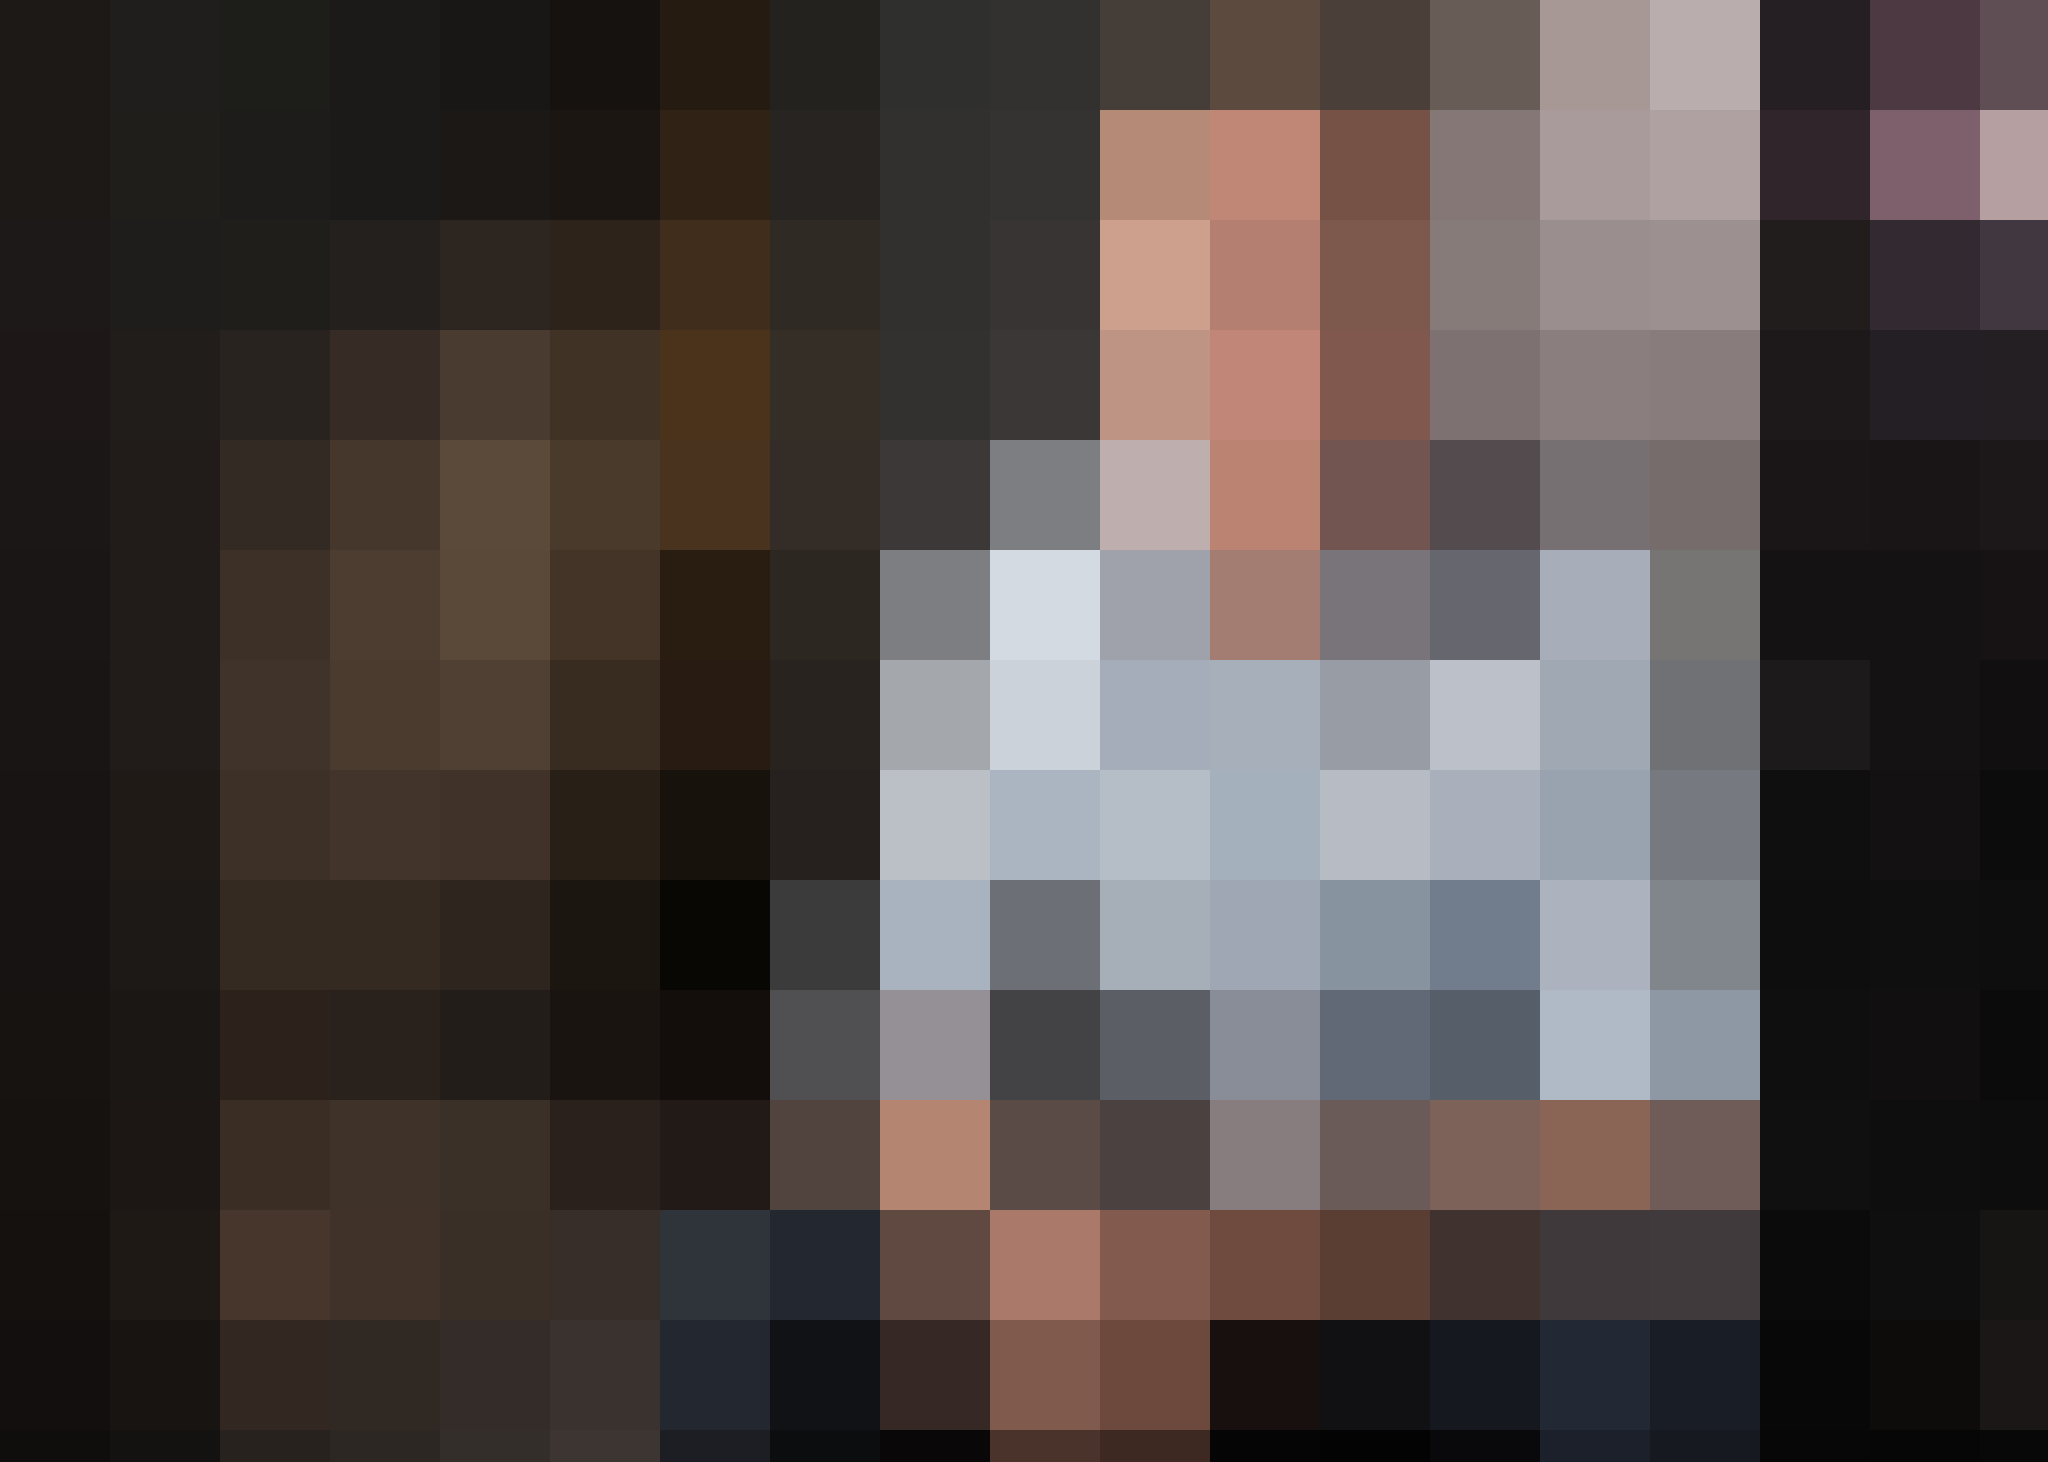 Extremely pixellated picture of a man in a blue shirt